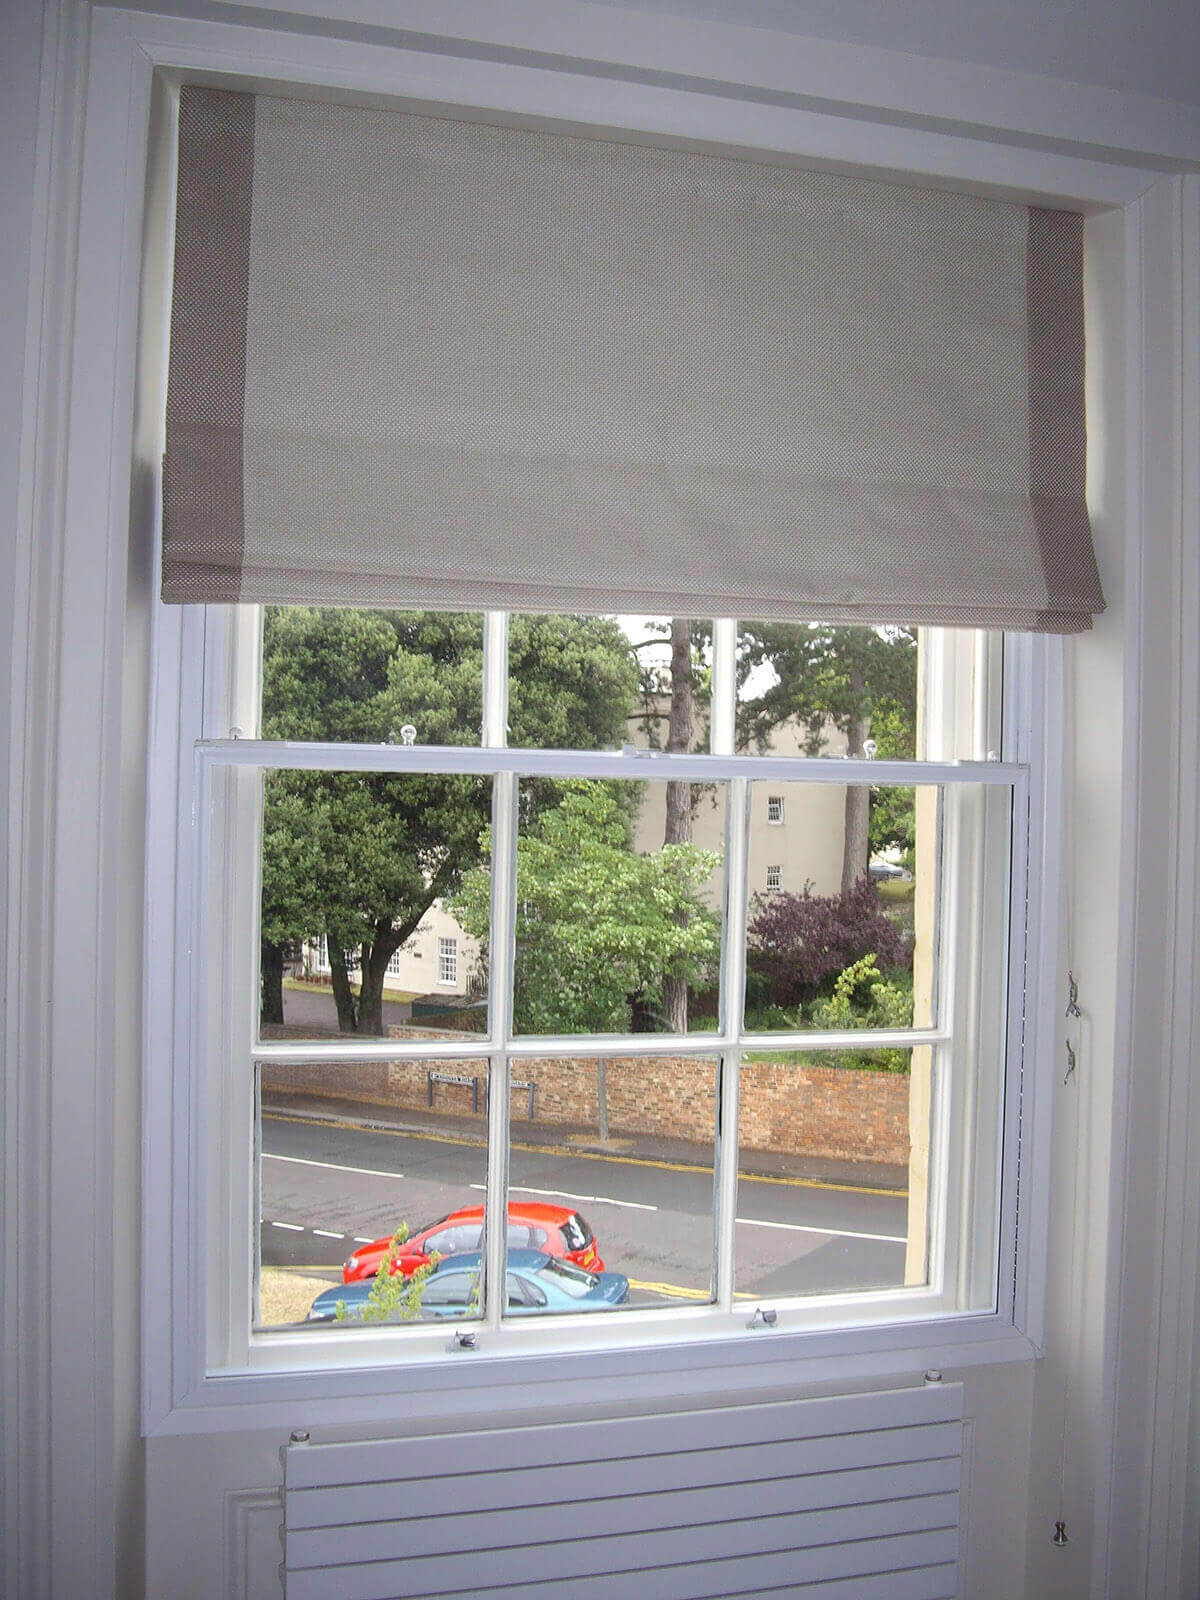 Secondary double glazing with acoustic glass for sound insulation